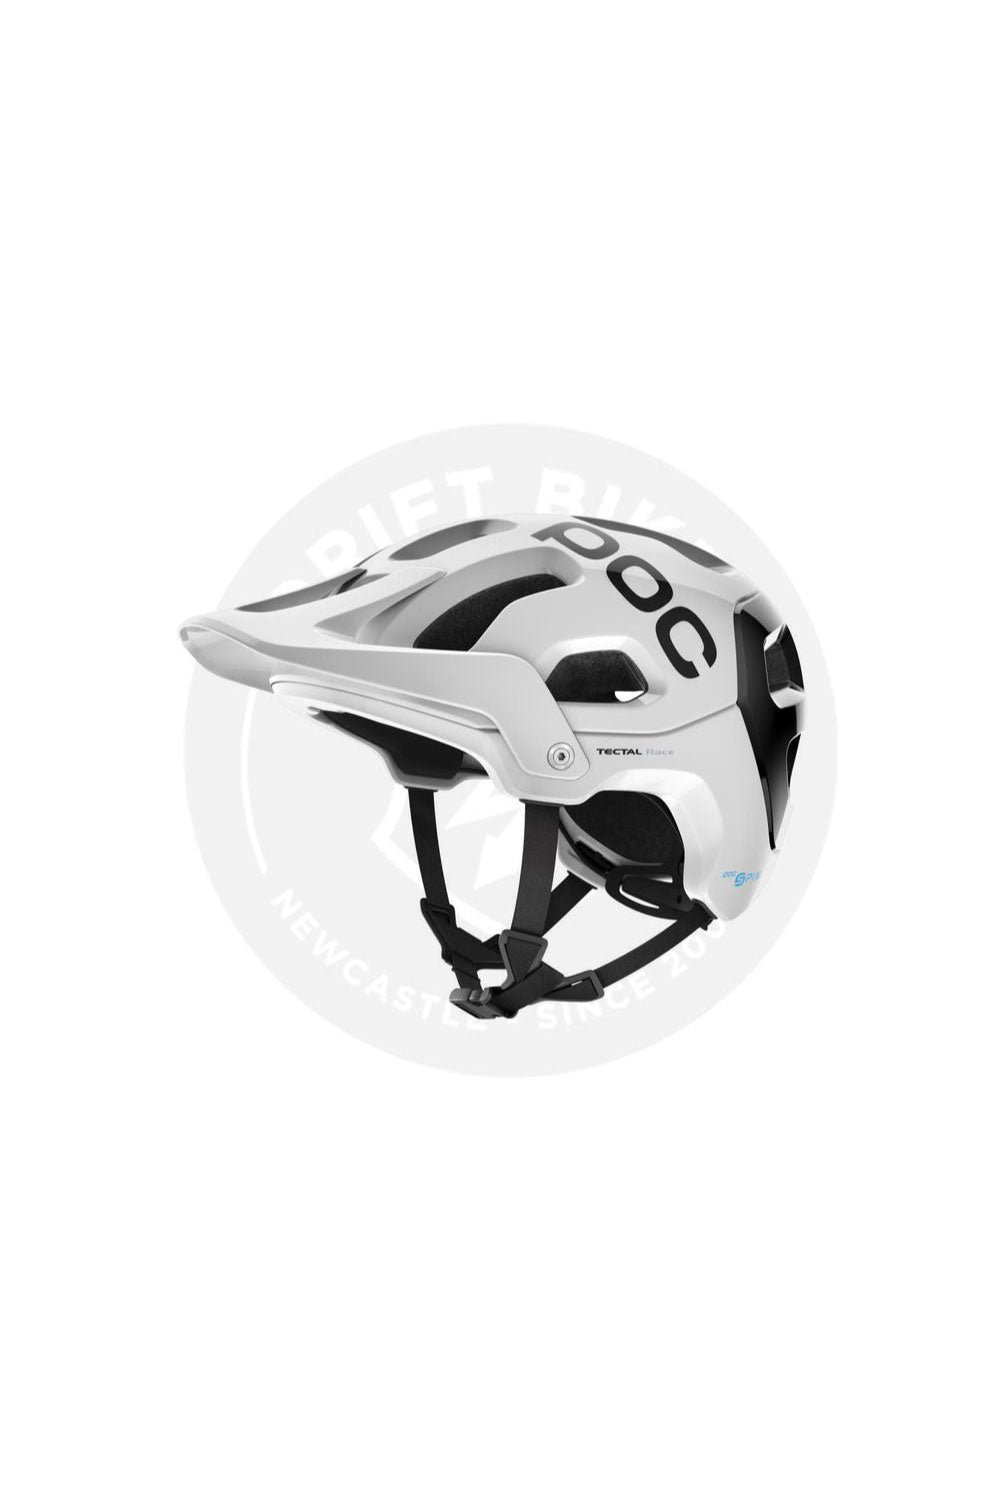 POC Tectal Race Spin Adult Mountain Bike Helmet